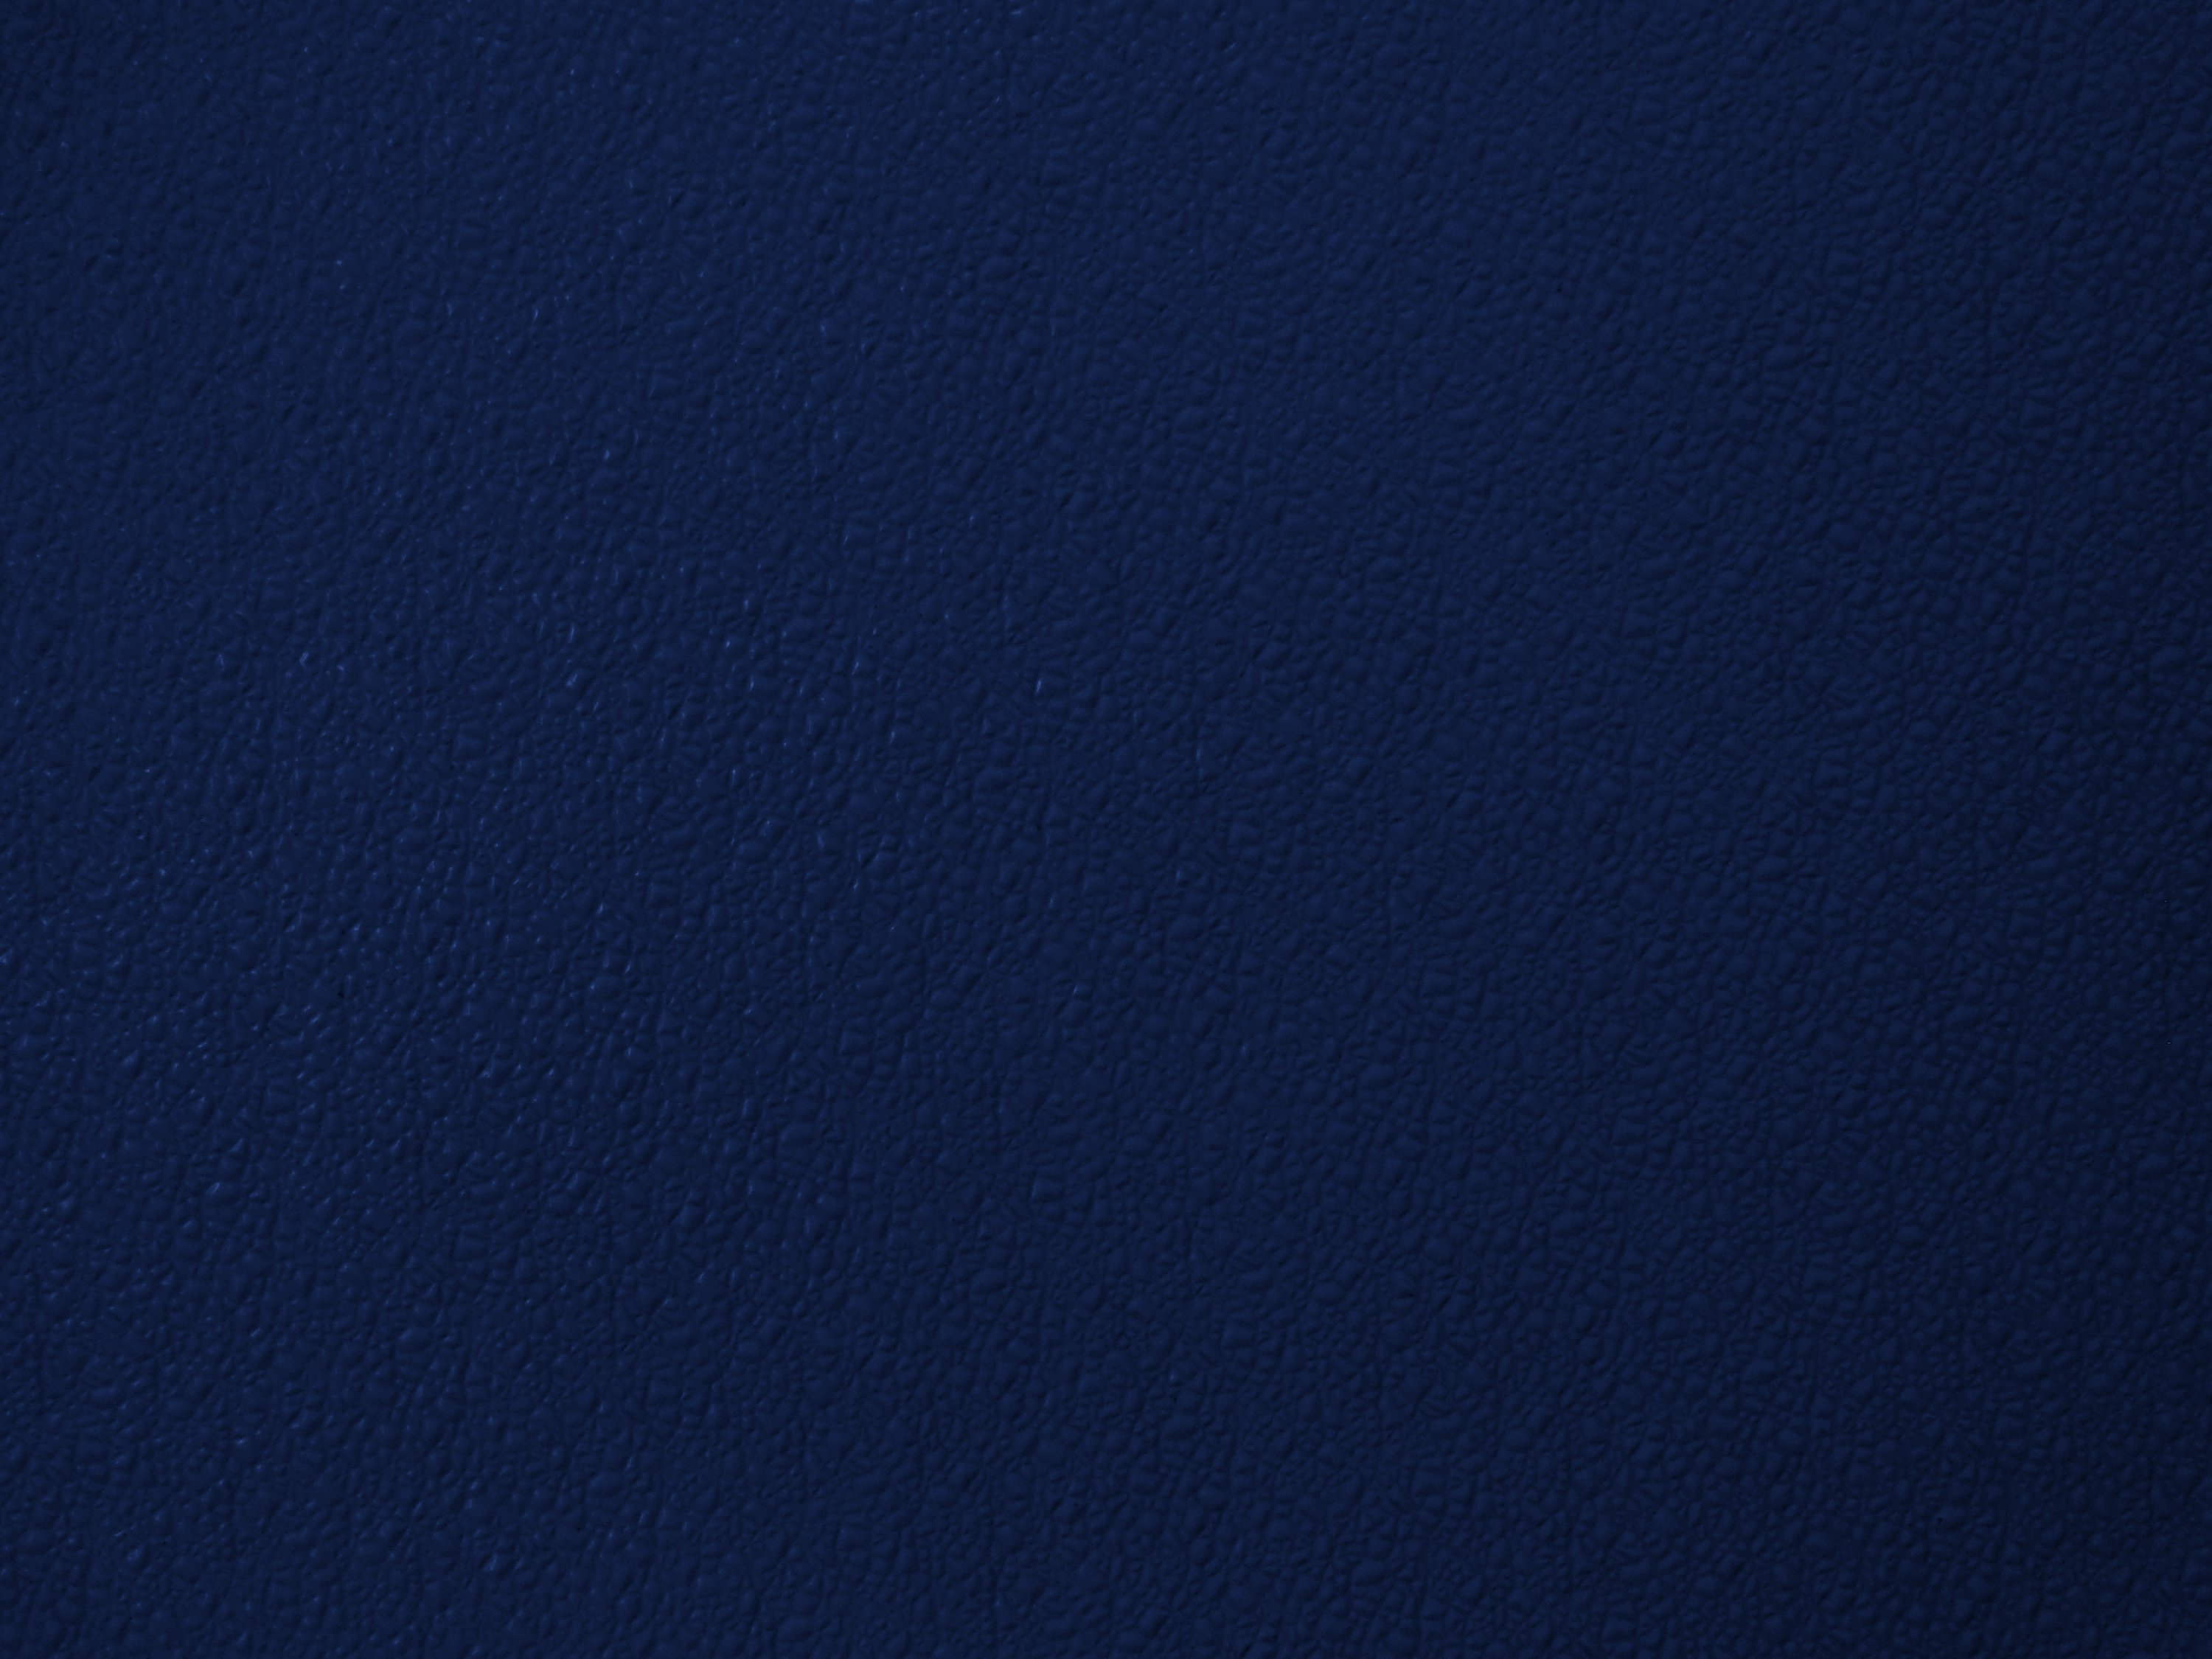 Image gallery navy blue texture for Dark blue wallpaper for walls